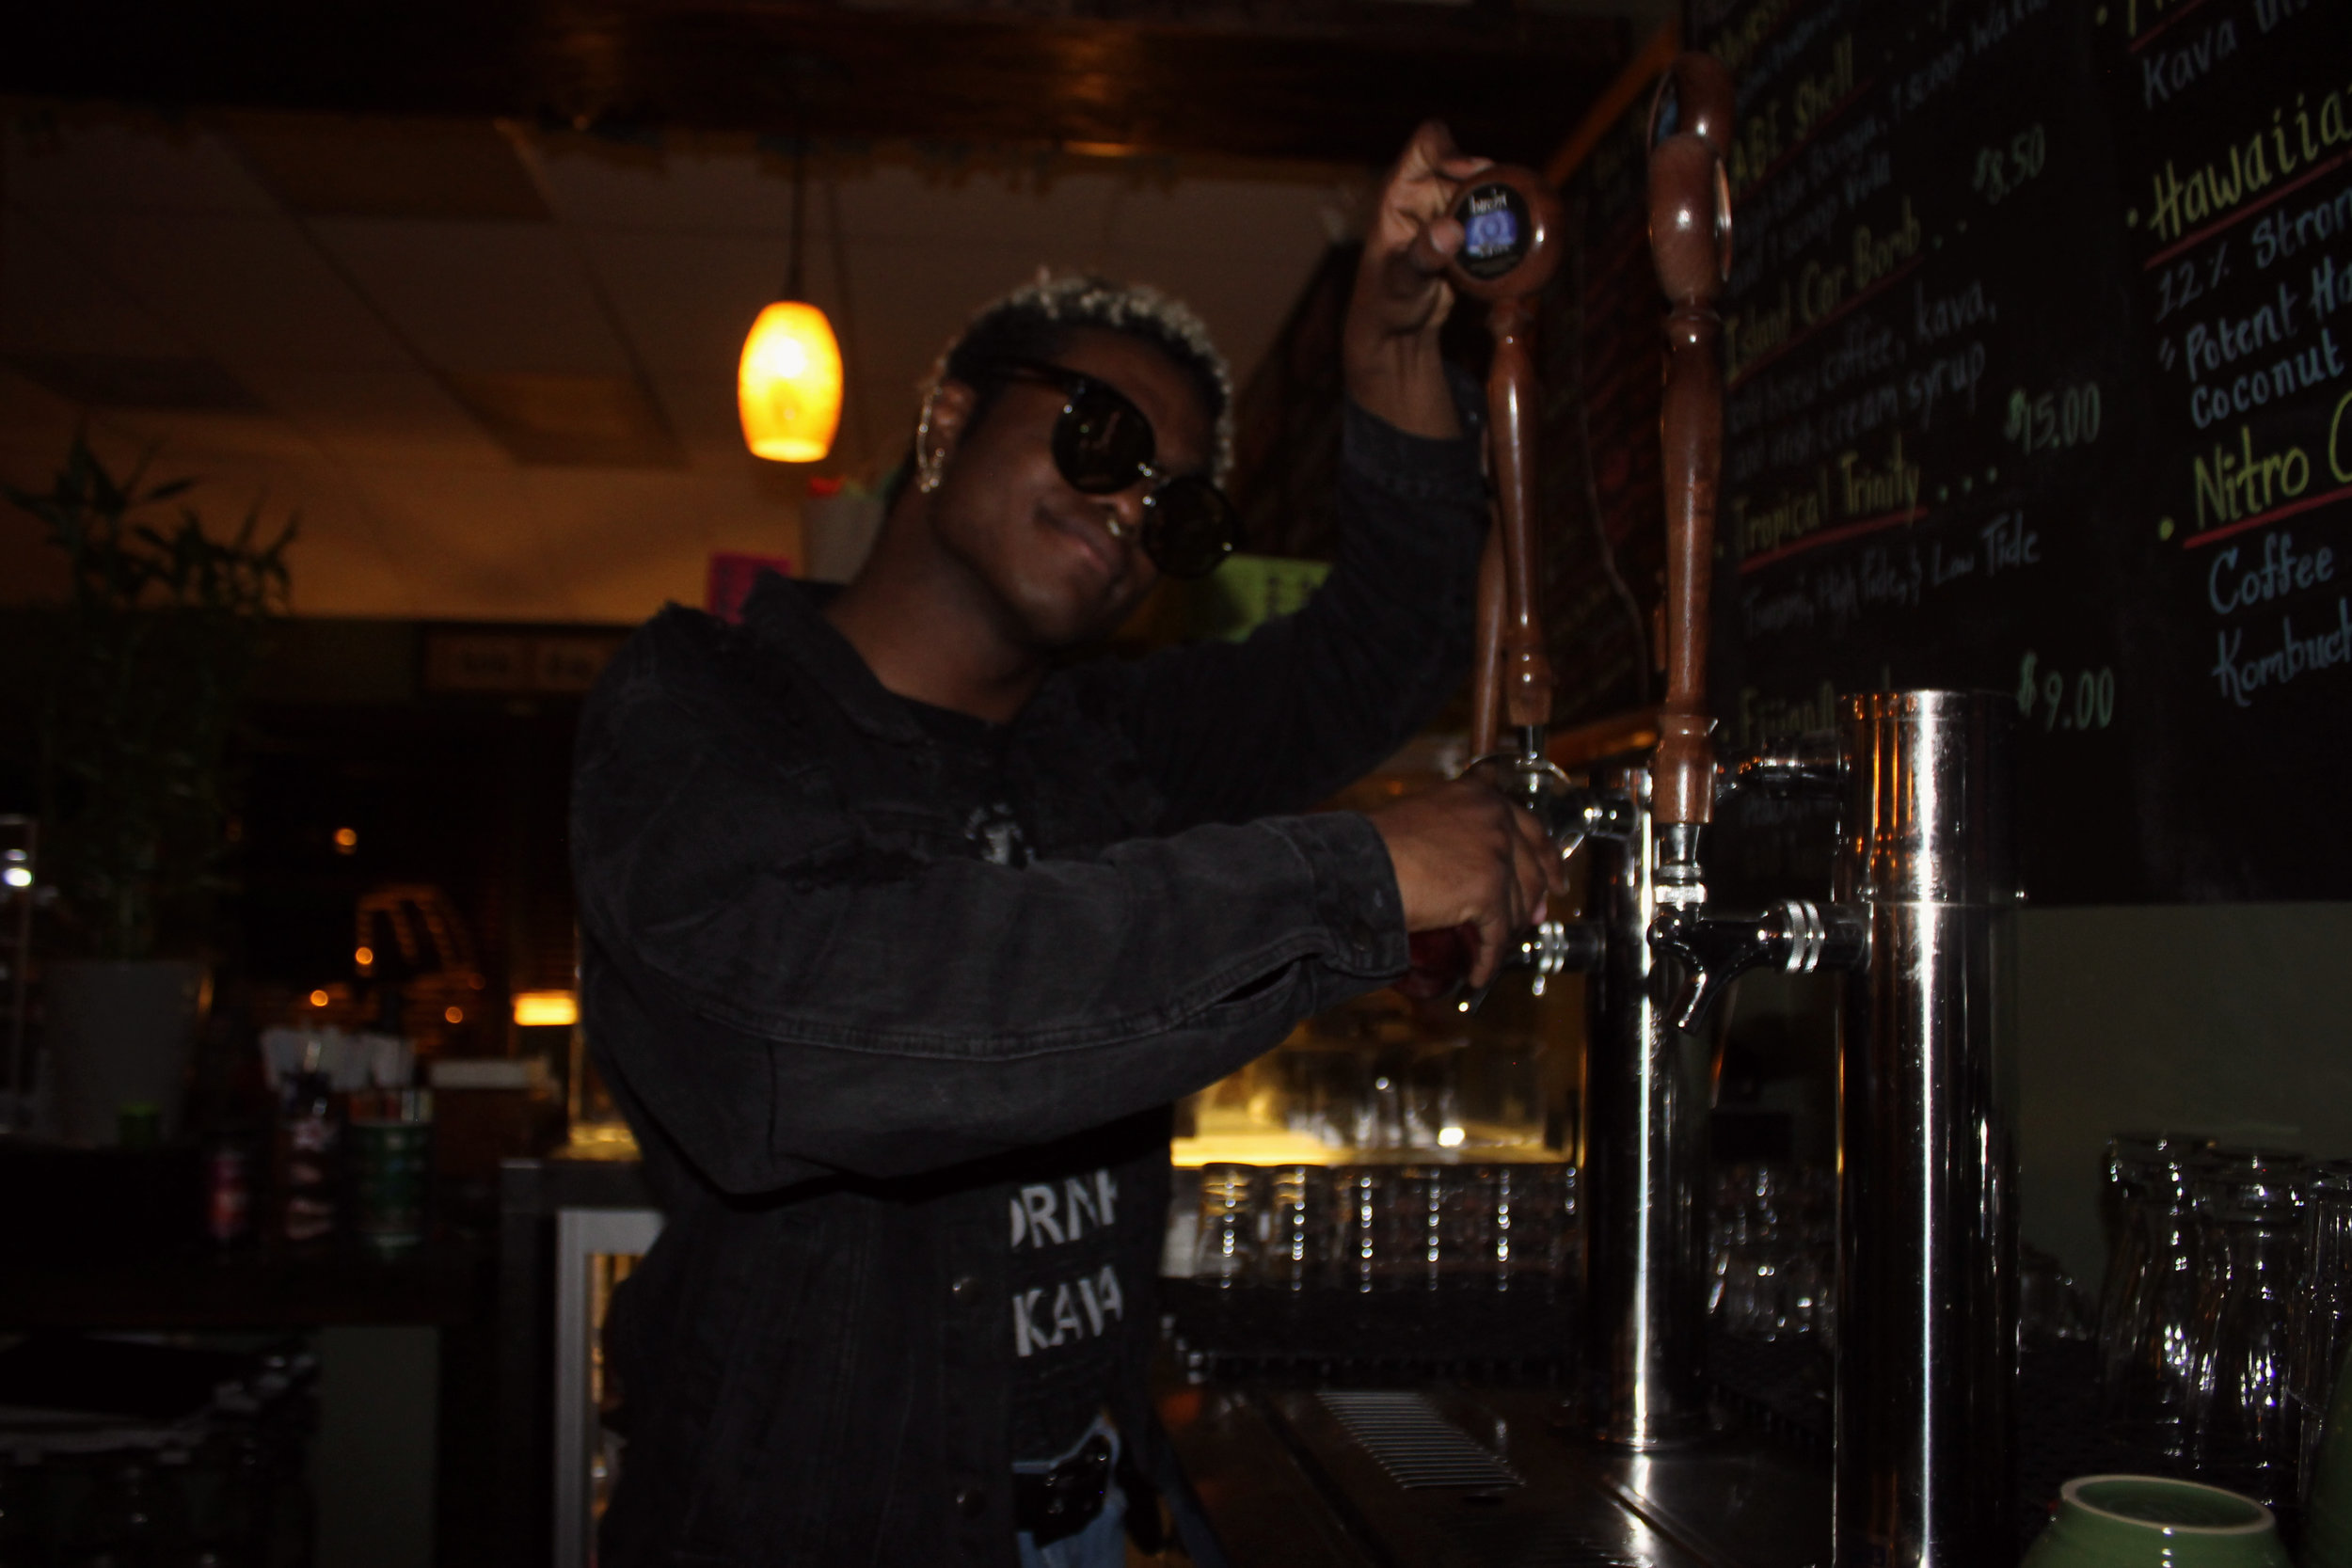 Above is Kava employee, Marcus Rivers, showing how to pour Kombucha out of tap. This drink has many health benefits and tastes great too.